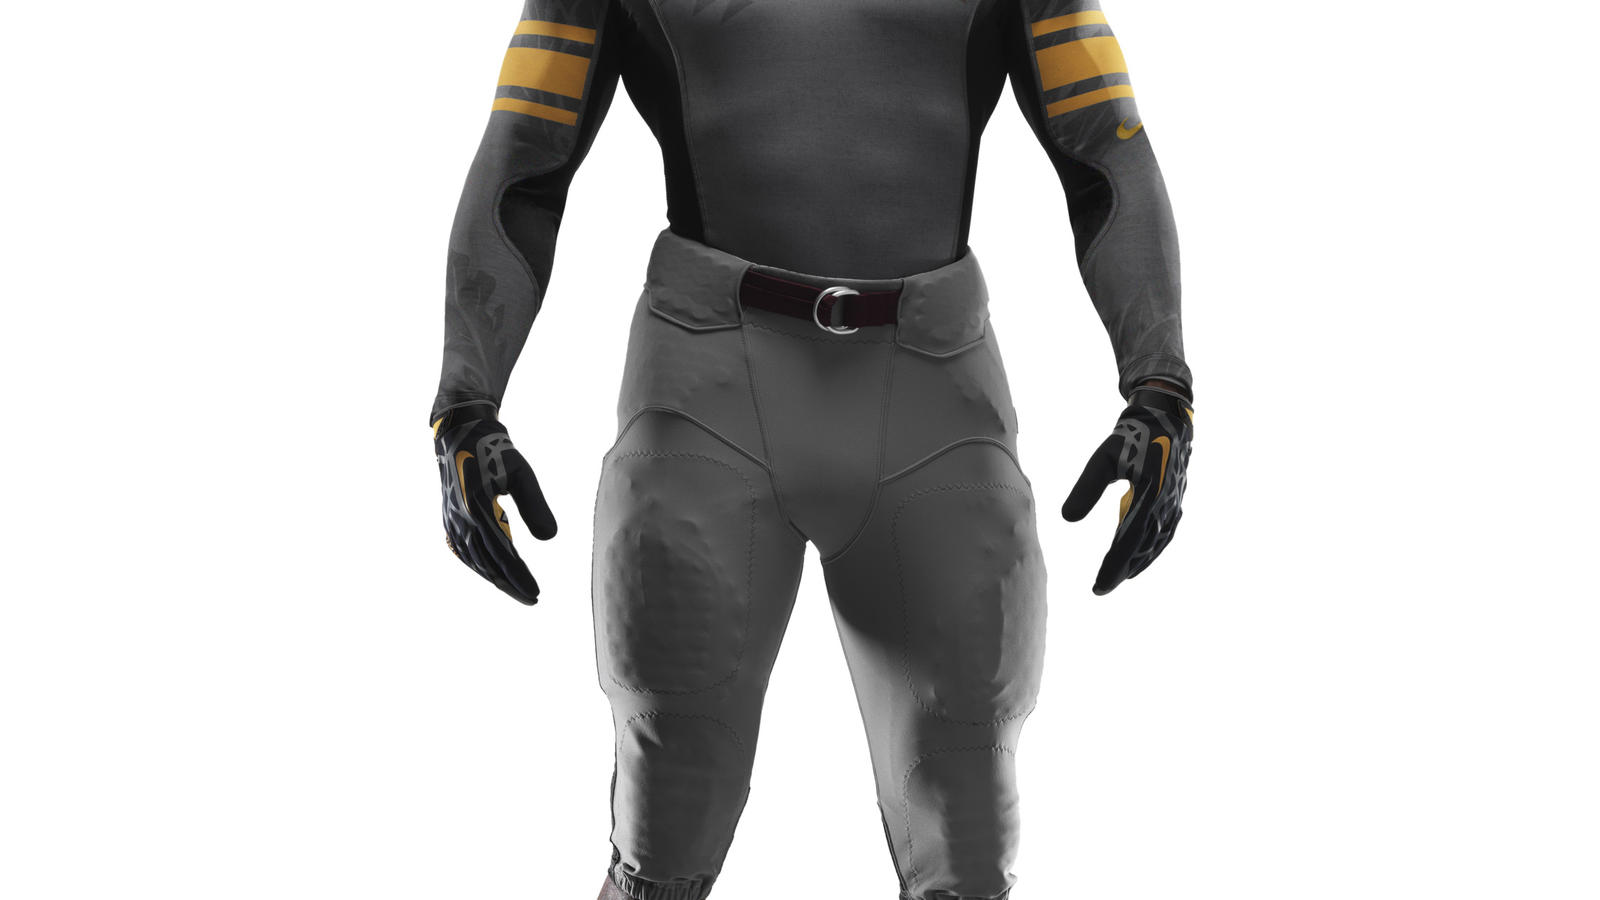 ncaa_fb13_uniforms_army_base_layer_0011